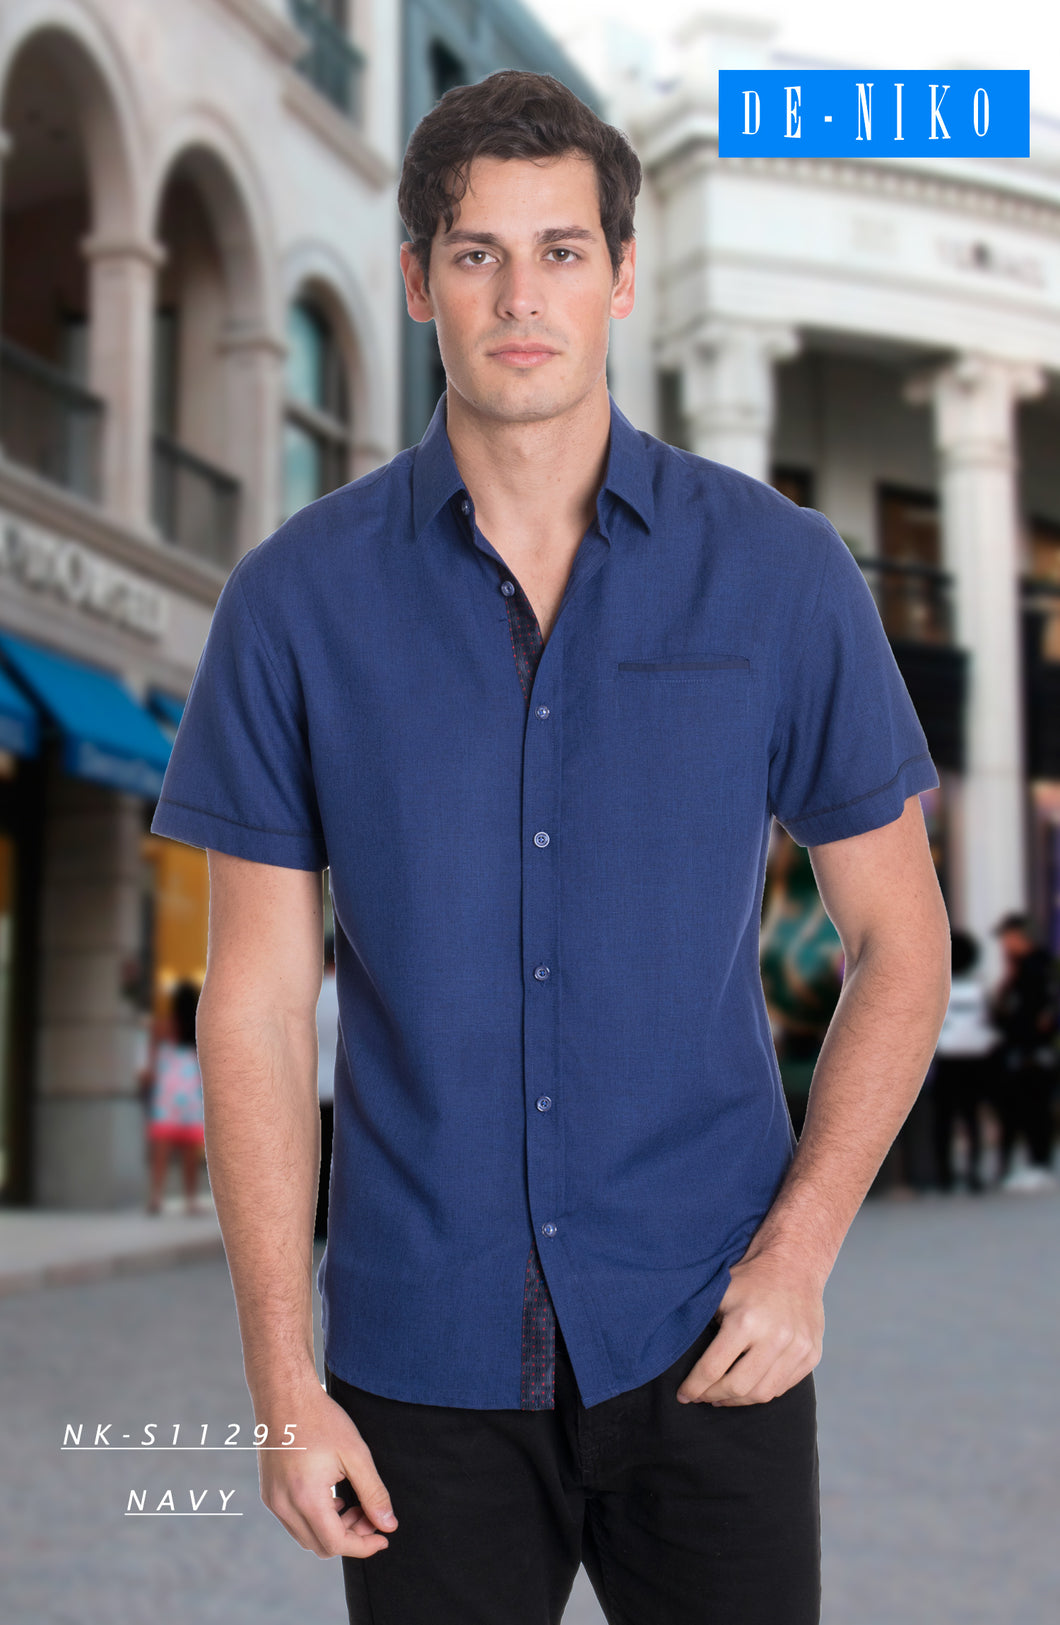 Men's Shirt NKS11295 NAVY